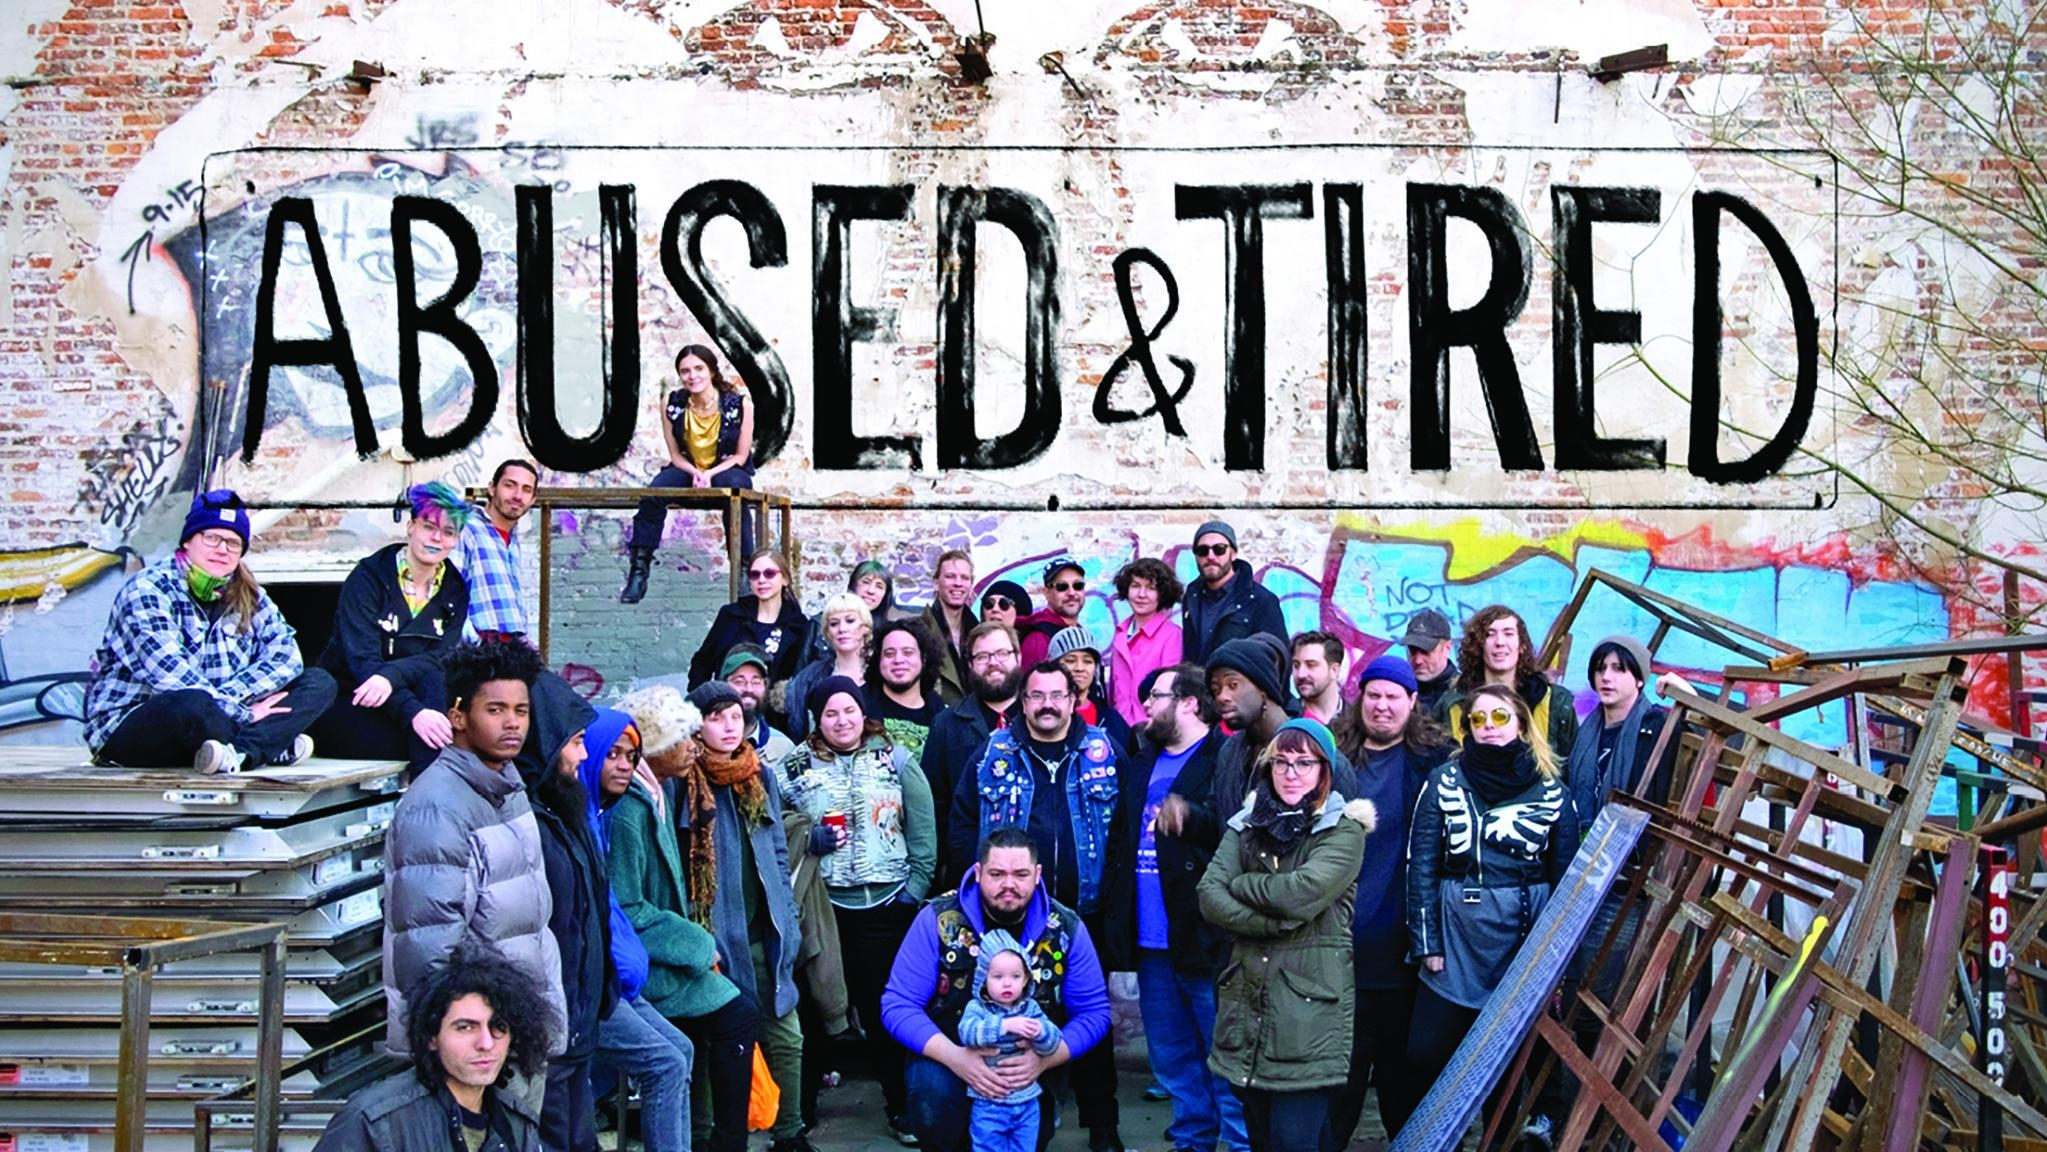 bcpnews-abused-tired-the-bell-foundry-s-artist-tenants-and-the-baltimore-rock-opera-society-bounce-back-afte-20170307.jpg